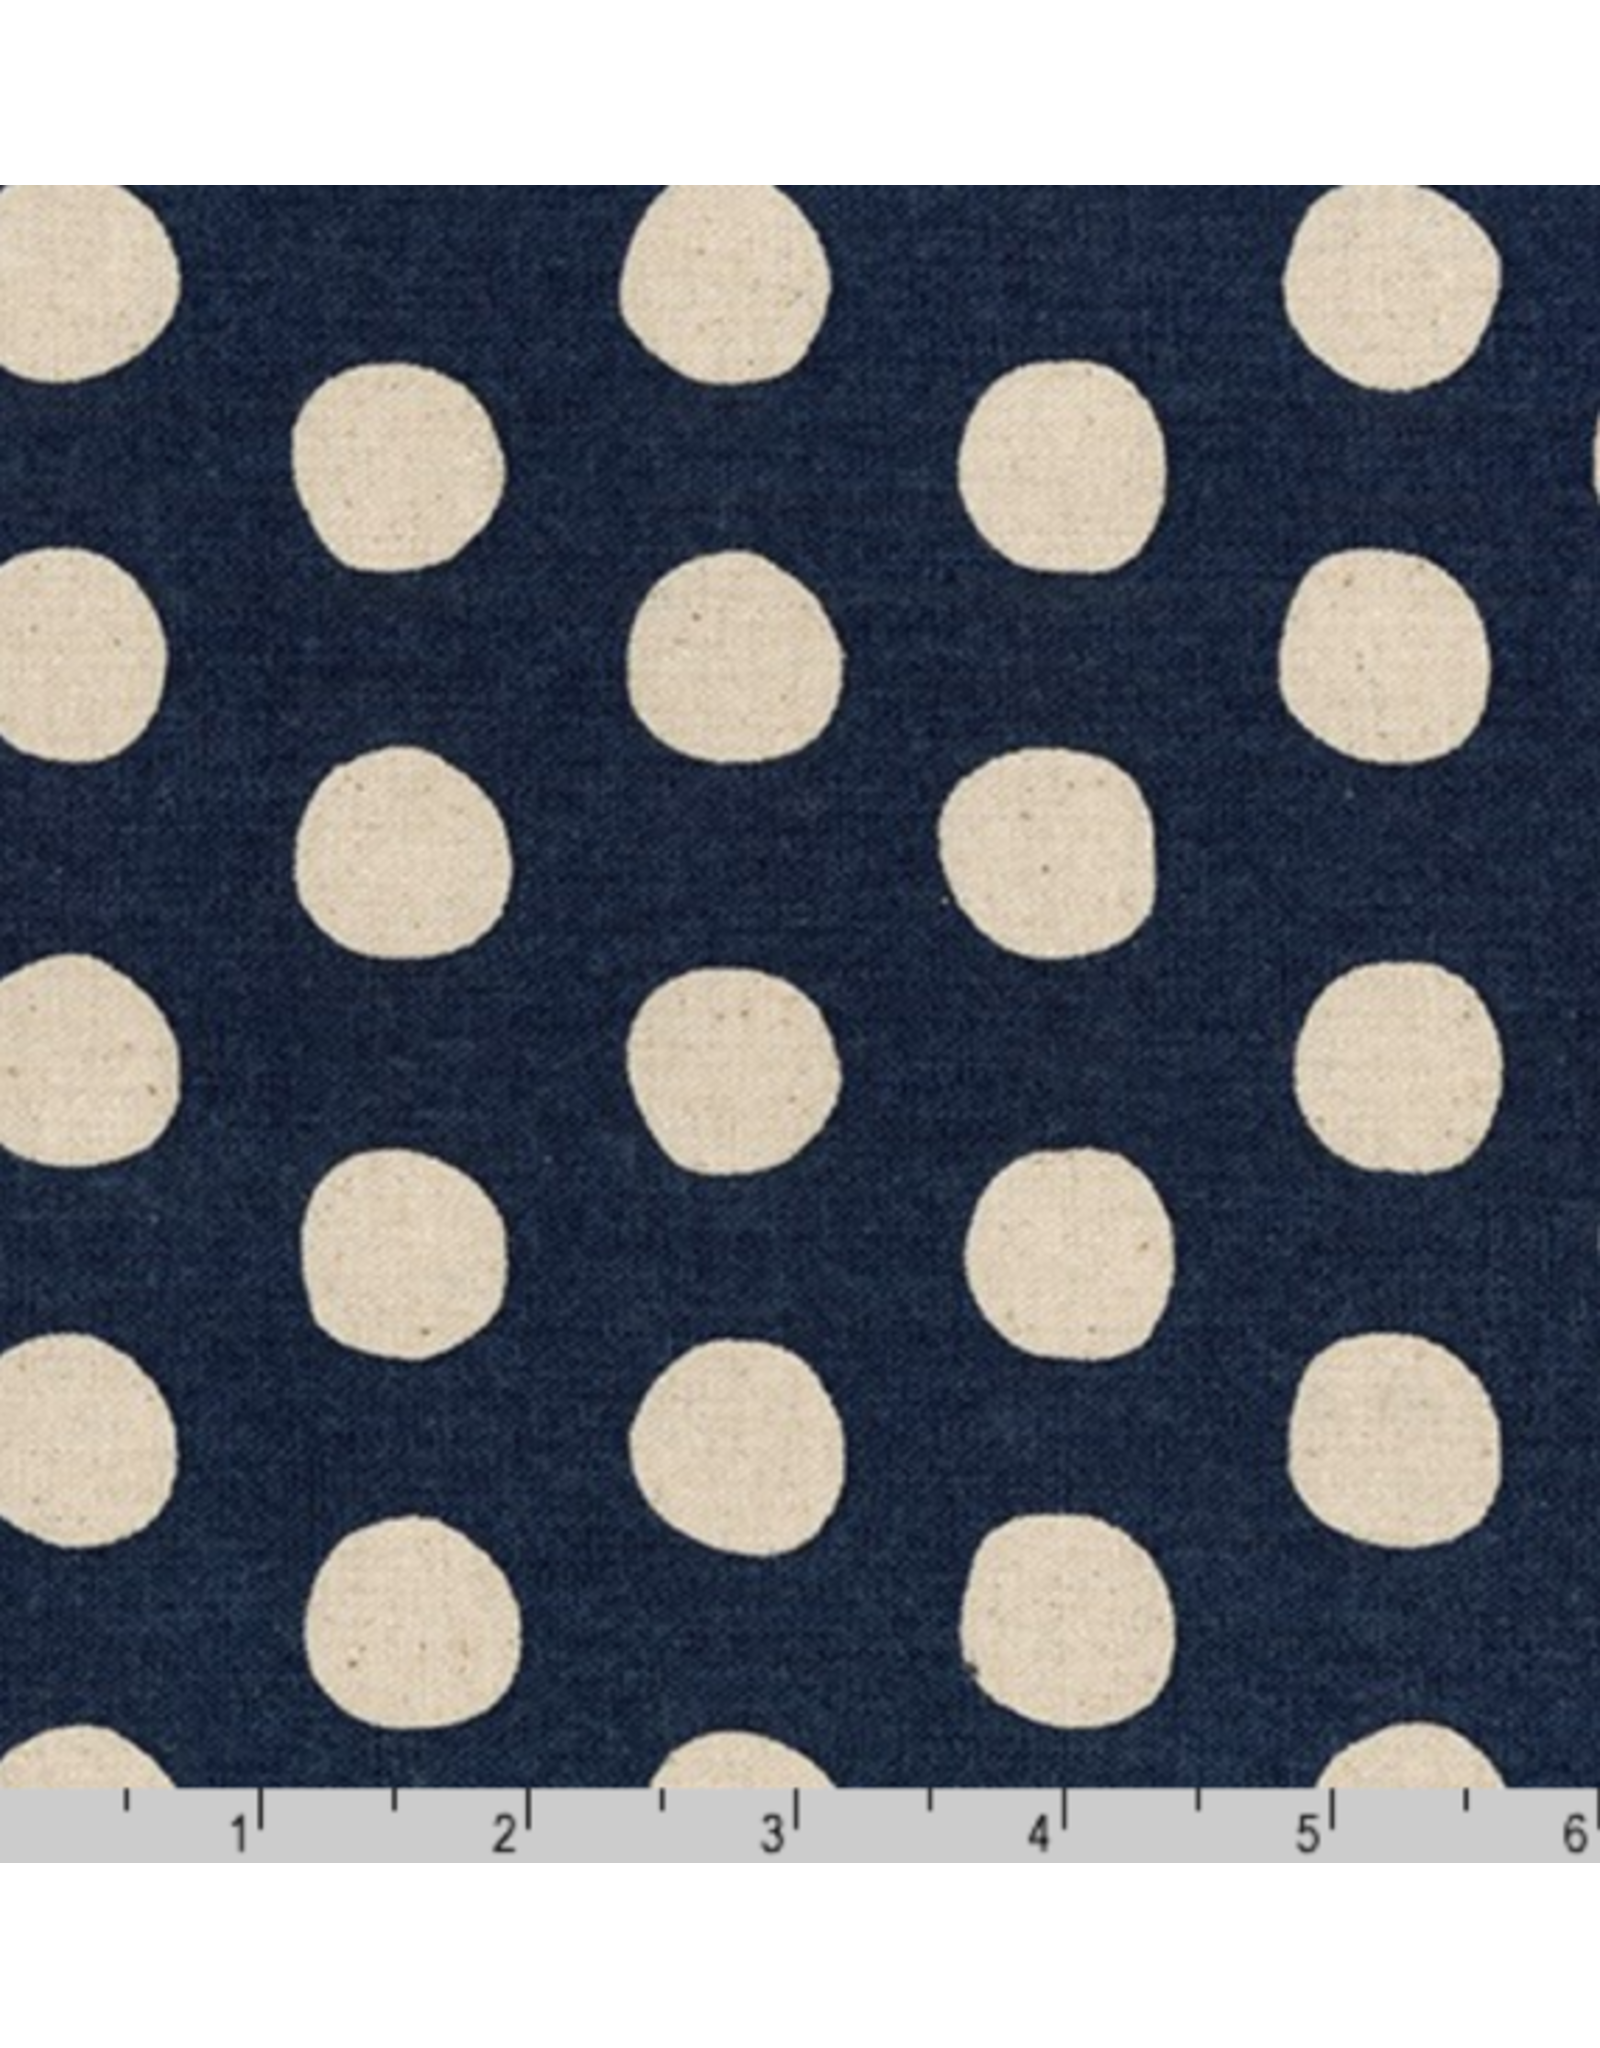 Sevenberry Canvas, Sevenberry Natural Dots in Midnight Navy, Fabric Half-Yards SB-88187D1-12